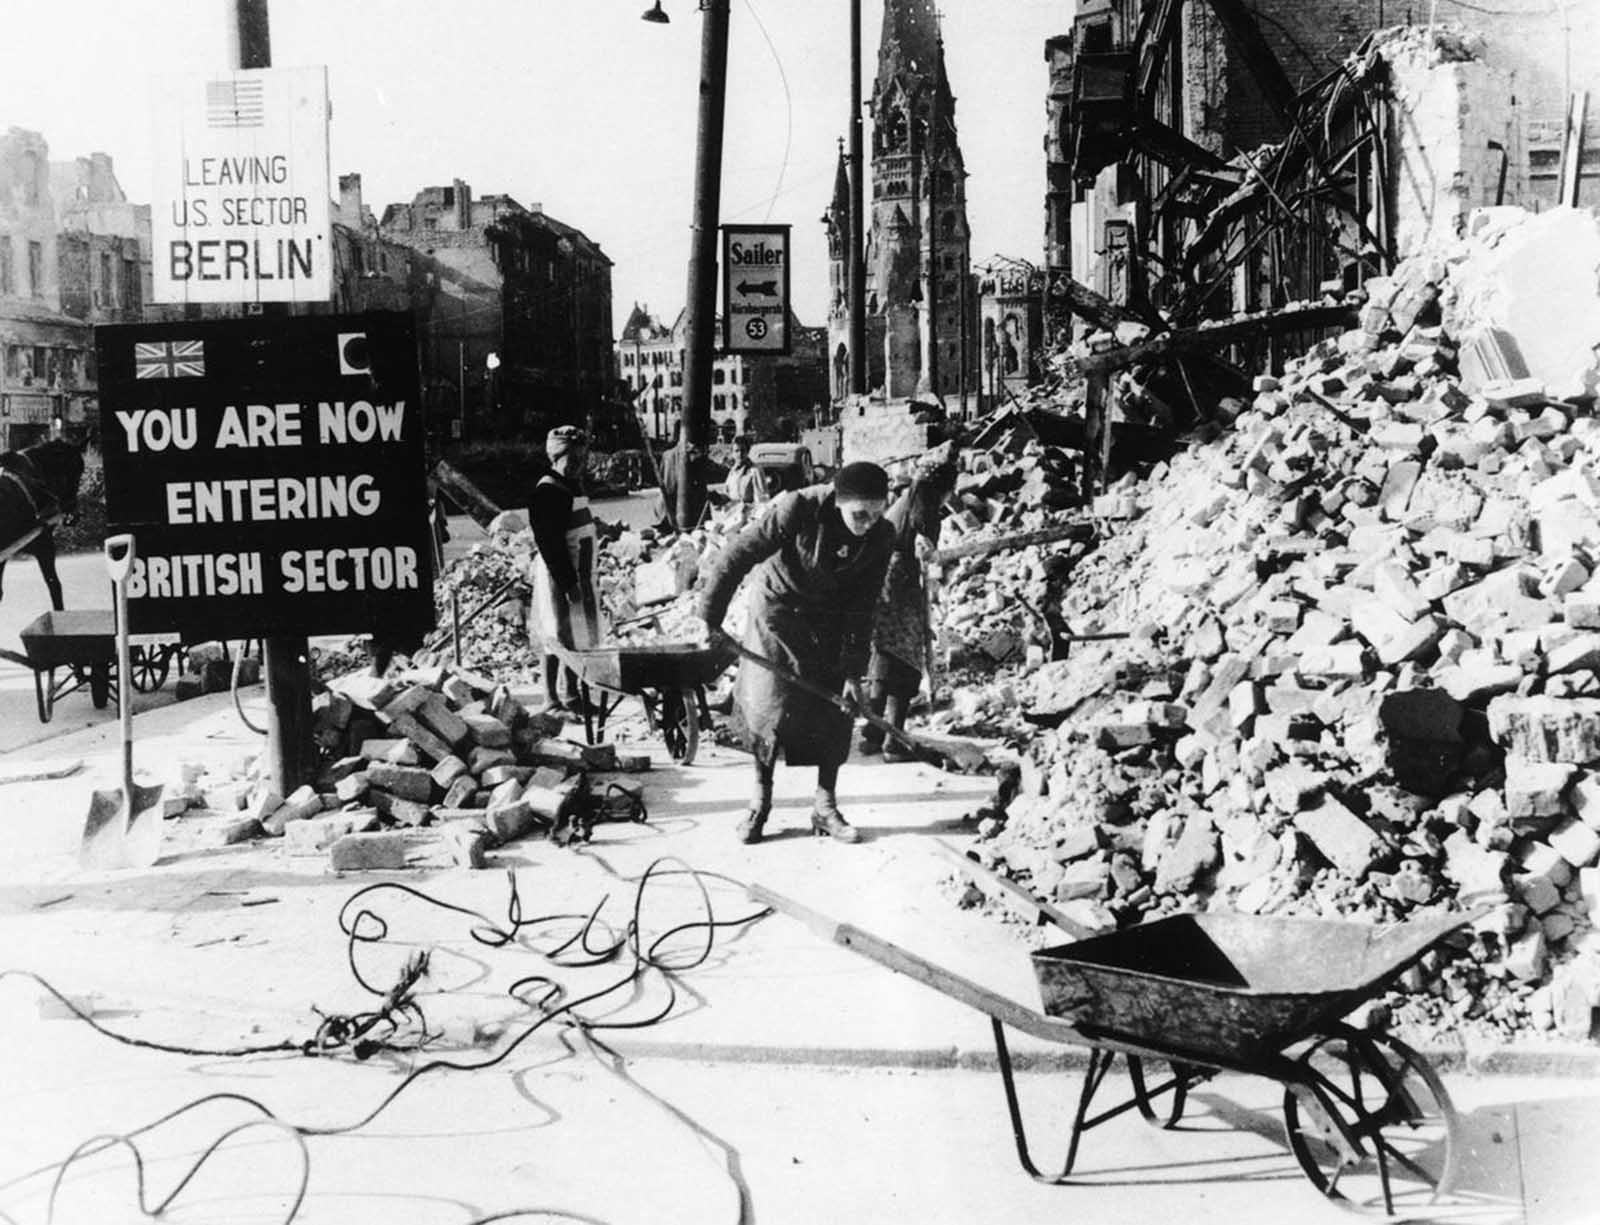 This 1945 photo shows German women clearing up the debris on Berlin's Tauentzienstrasse, with the ruins of the Kaiser Wilhelm Church in the background. The absence of able bodied men meant that the responsibility for clearing the wreckage fell mainly to civilian women, which were called